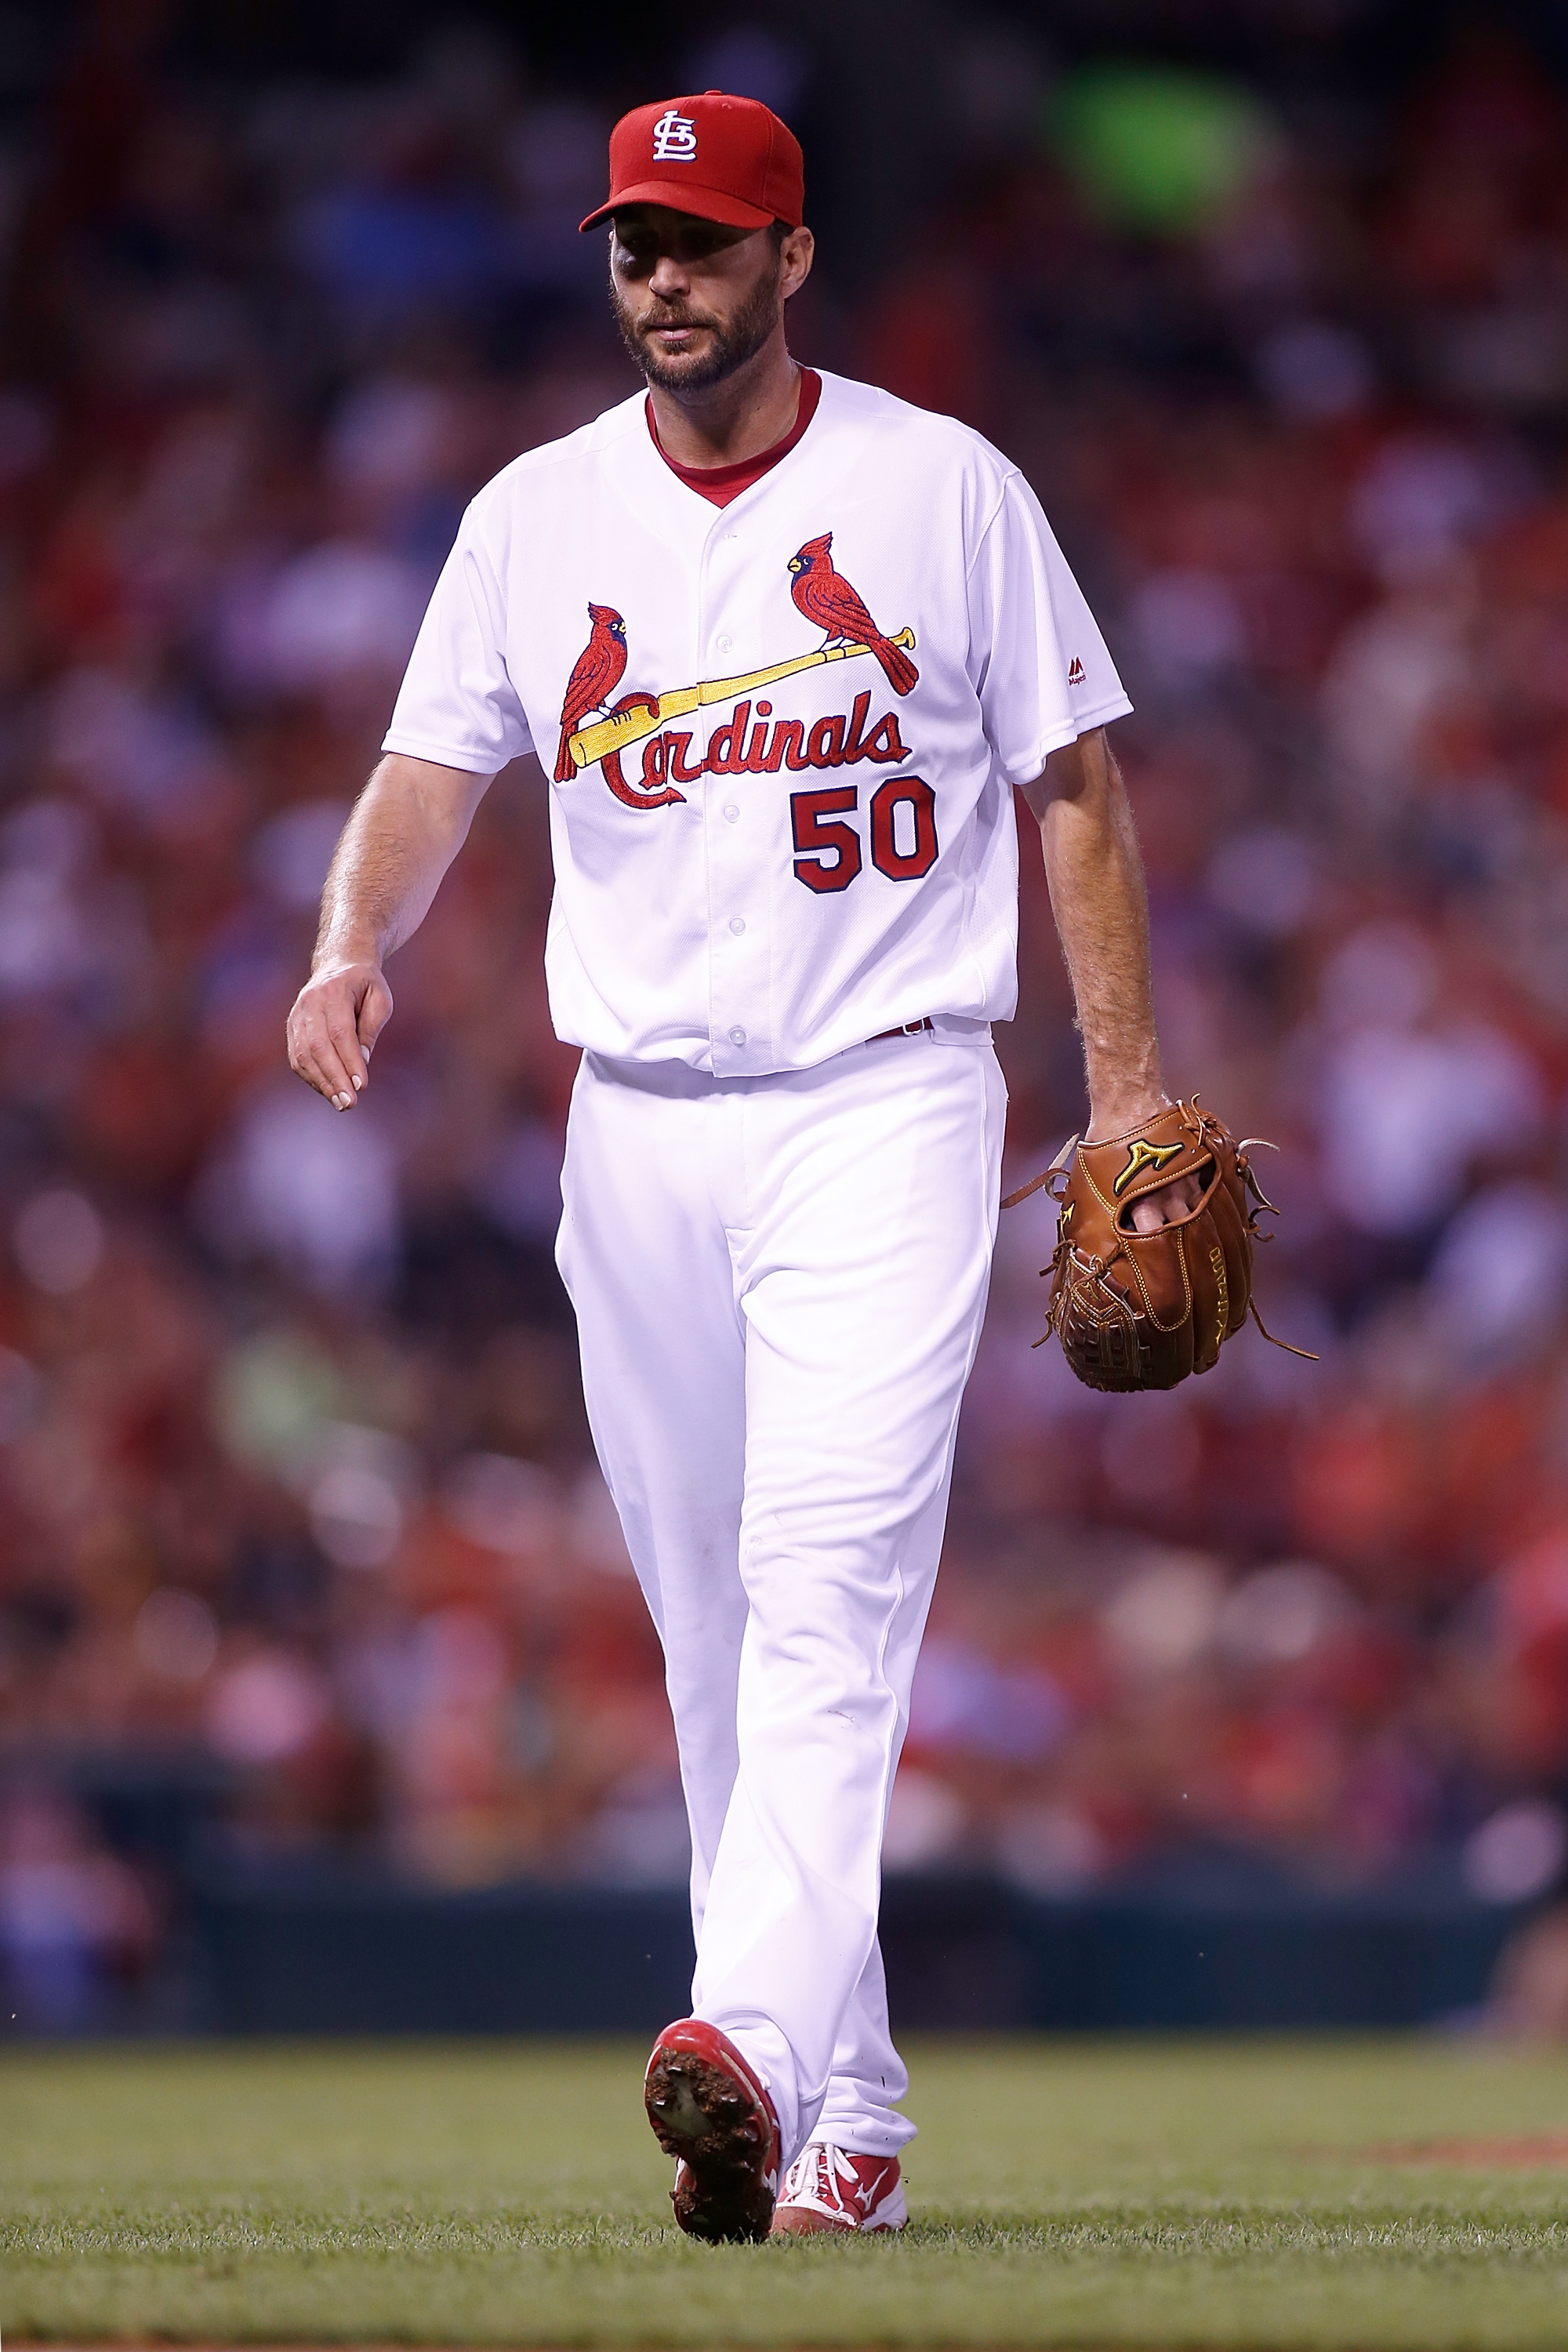 St. Louis Cardinals starting pitcher Adam Wainwright walks to the dugout after pitching during the fourth inning of a baseball game against the San Francisco Giants Friday, June 3, 2016 in St. Louis. (AP Photo/Scott Kane)